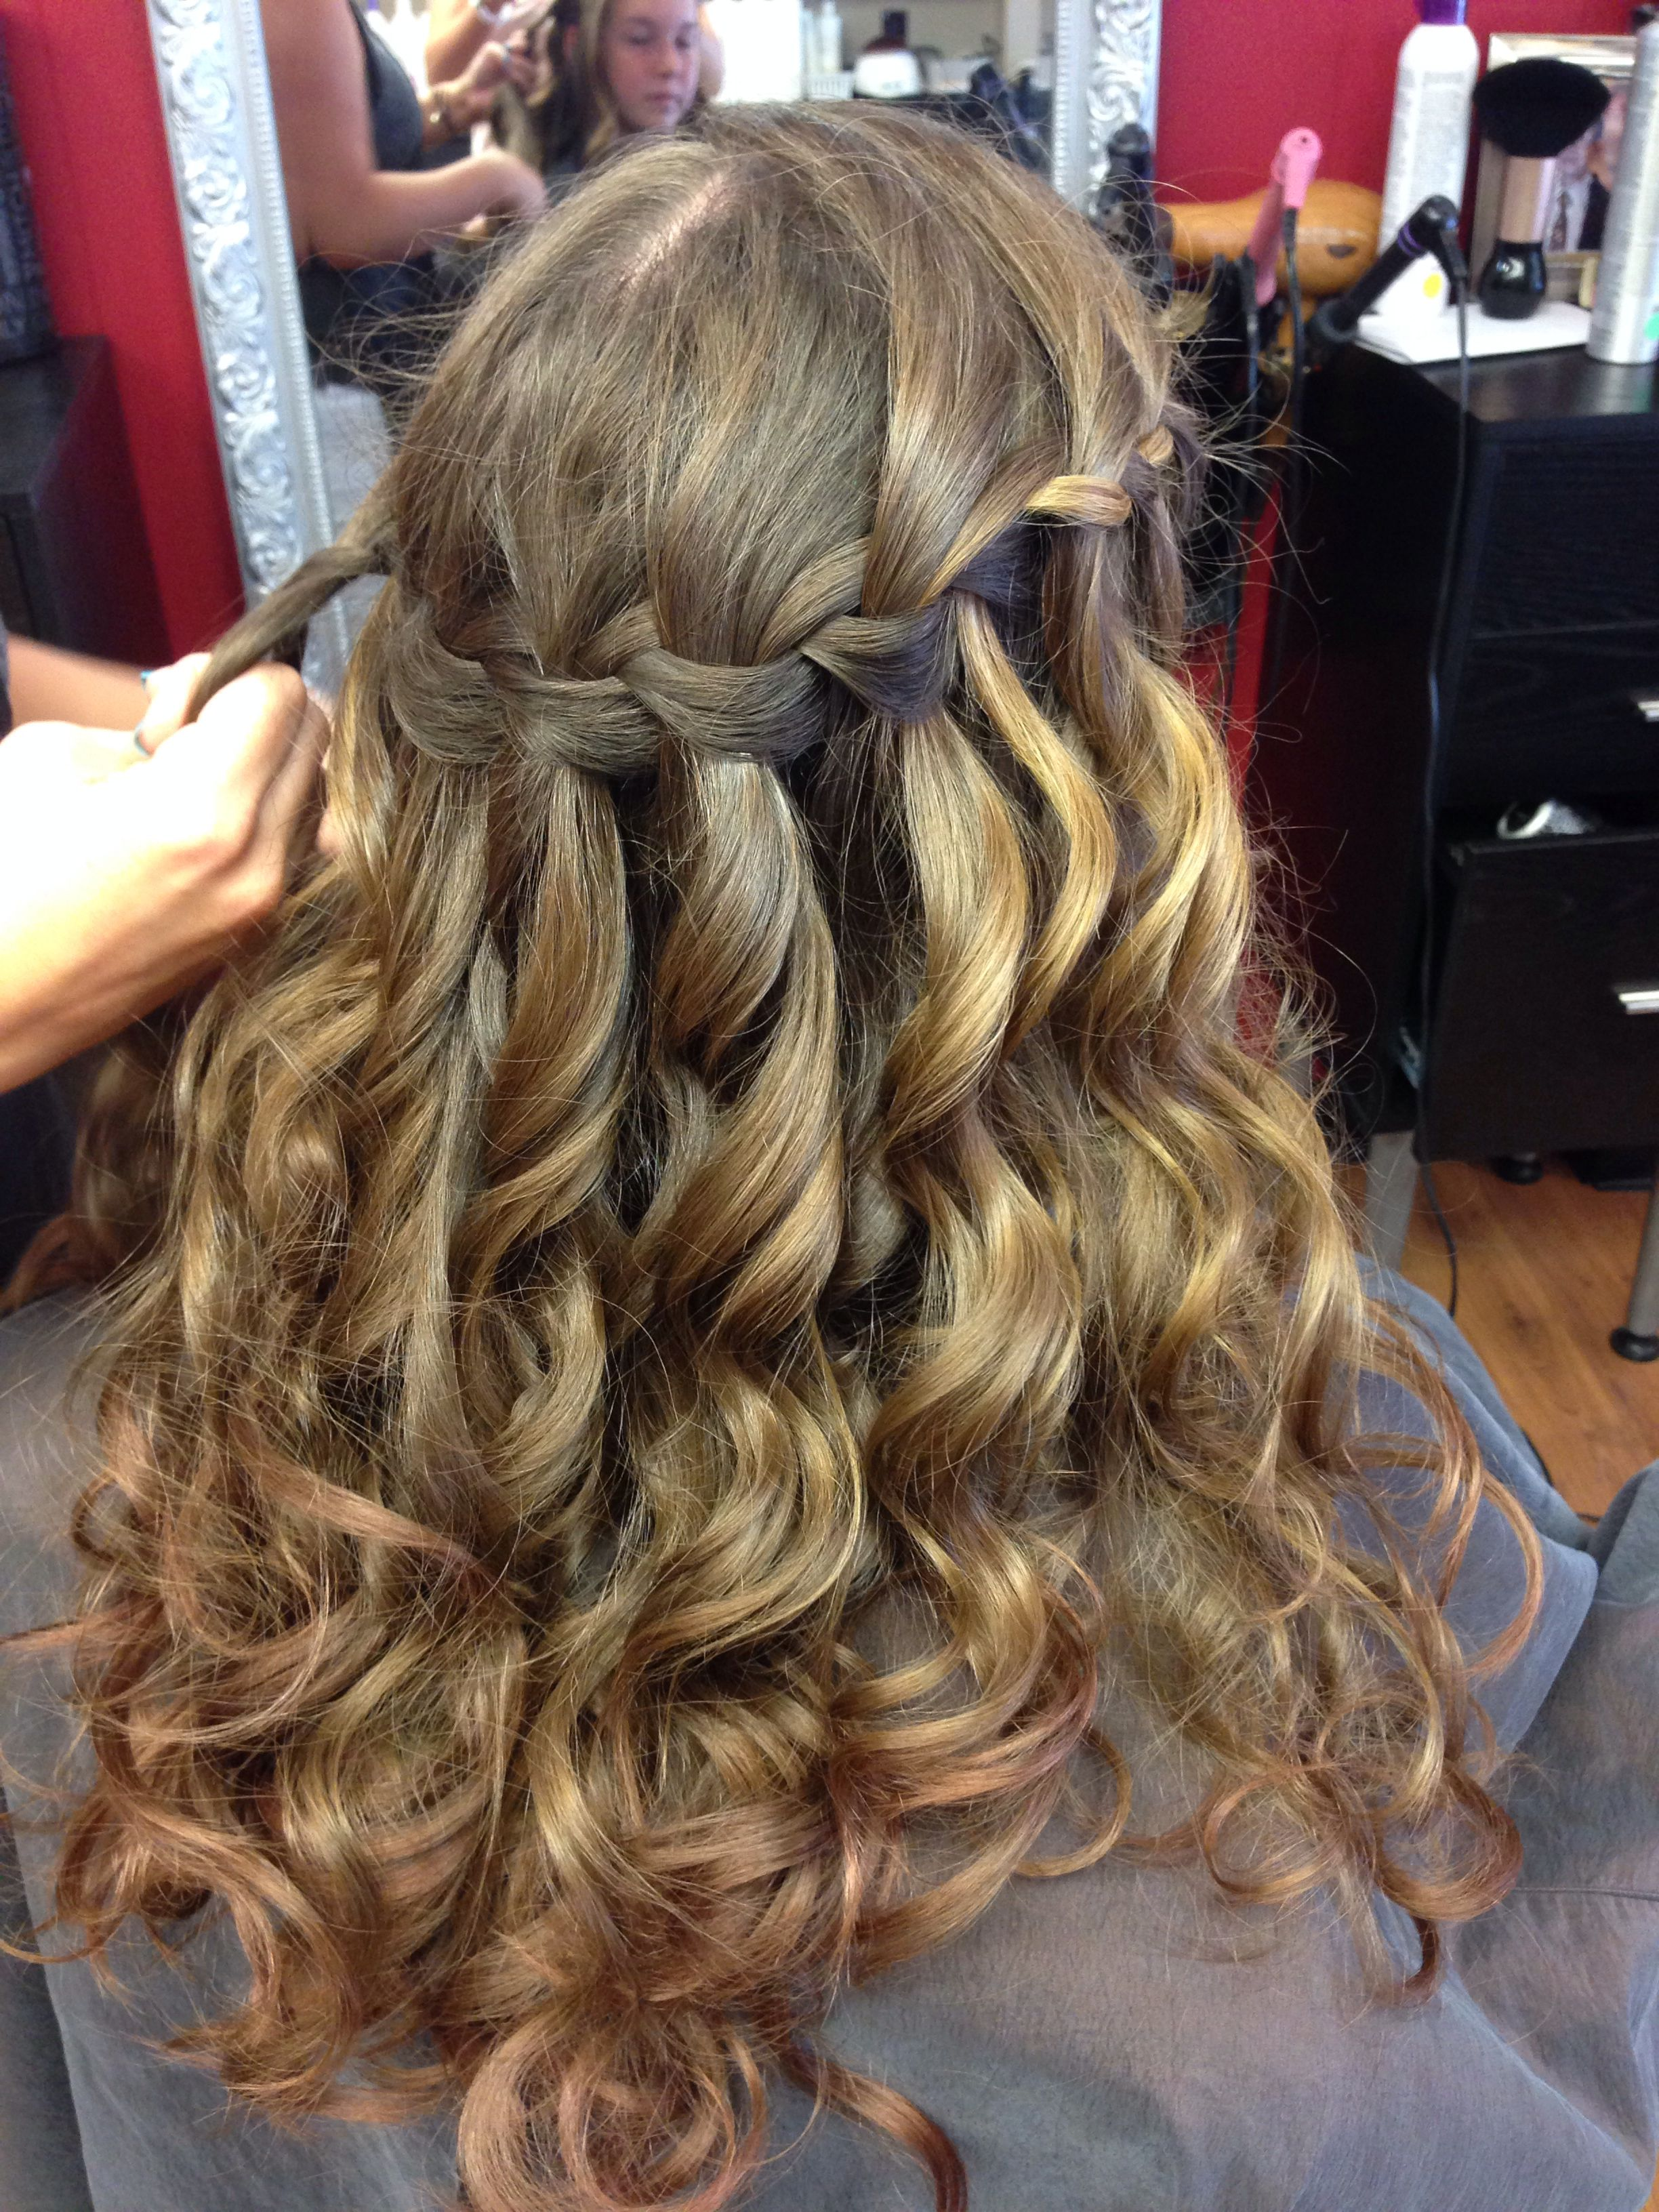 hair style for teenager s waterfall braid for 8th grade graduation hair 7408 | 7408e4a5351d89cd410fed5059fe30f3